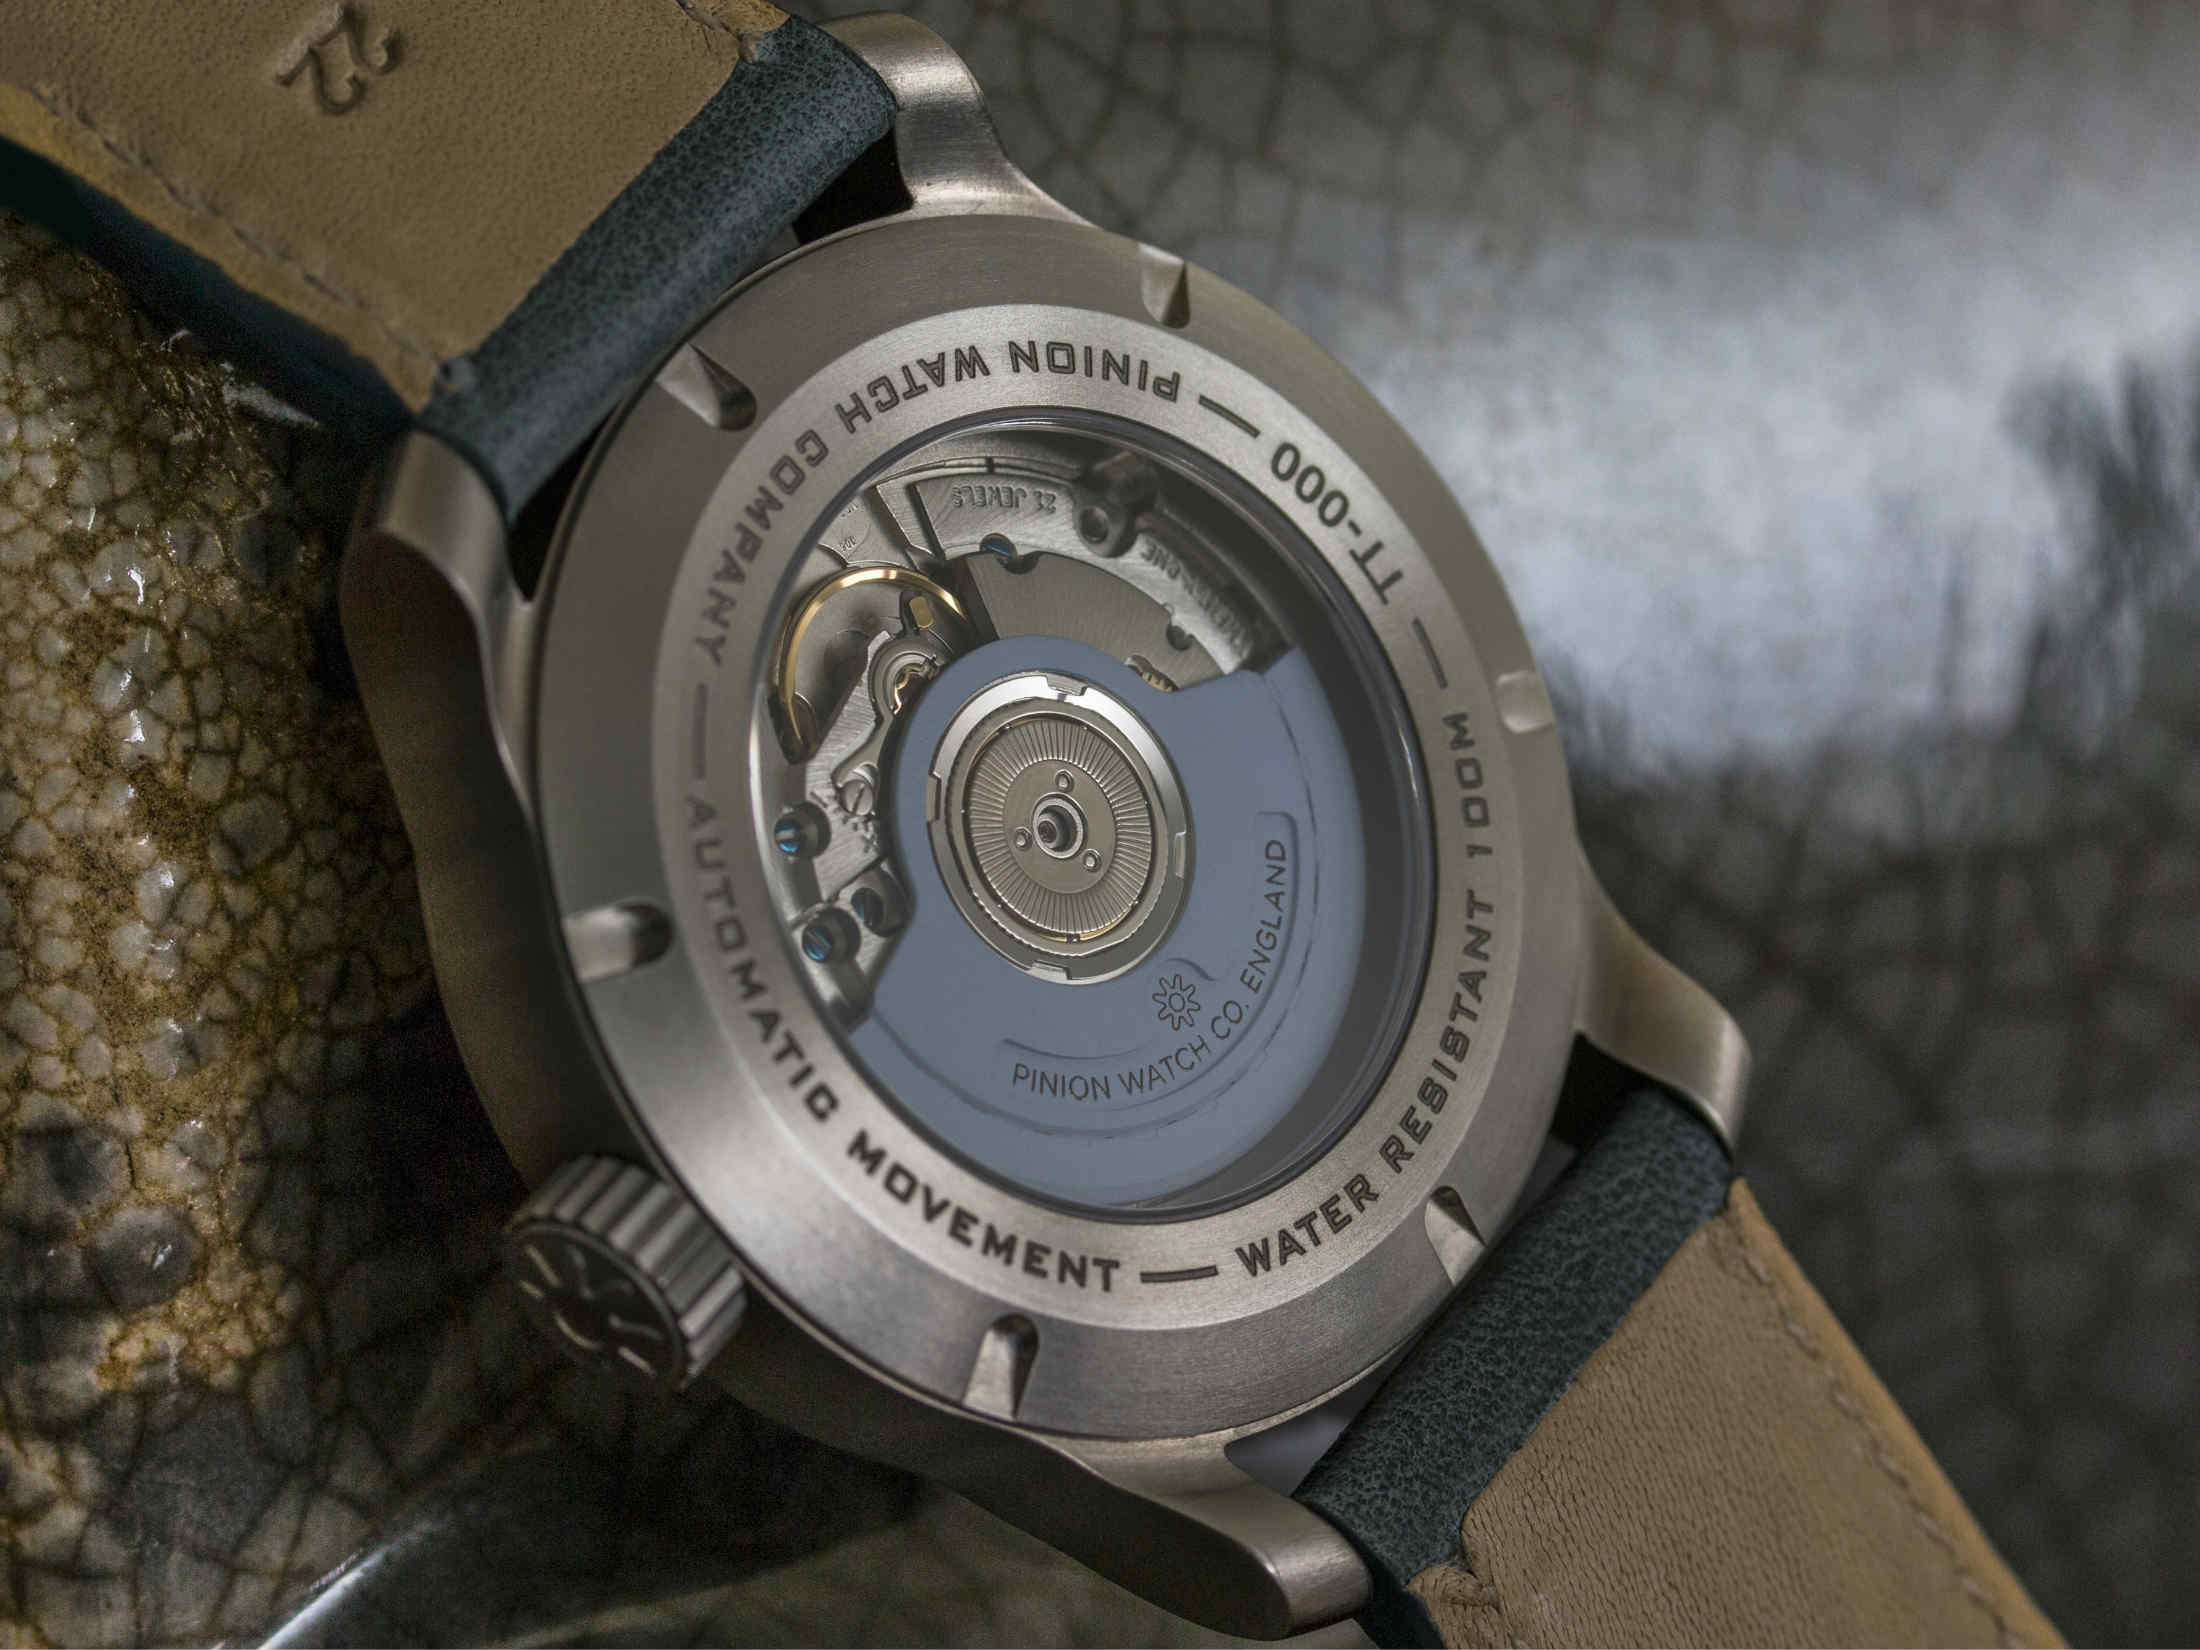 Pinion TT watch movement